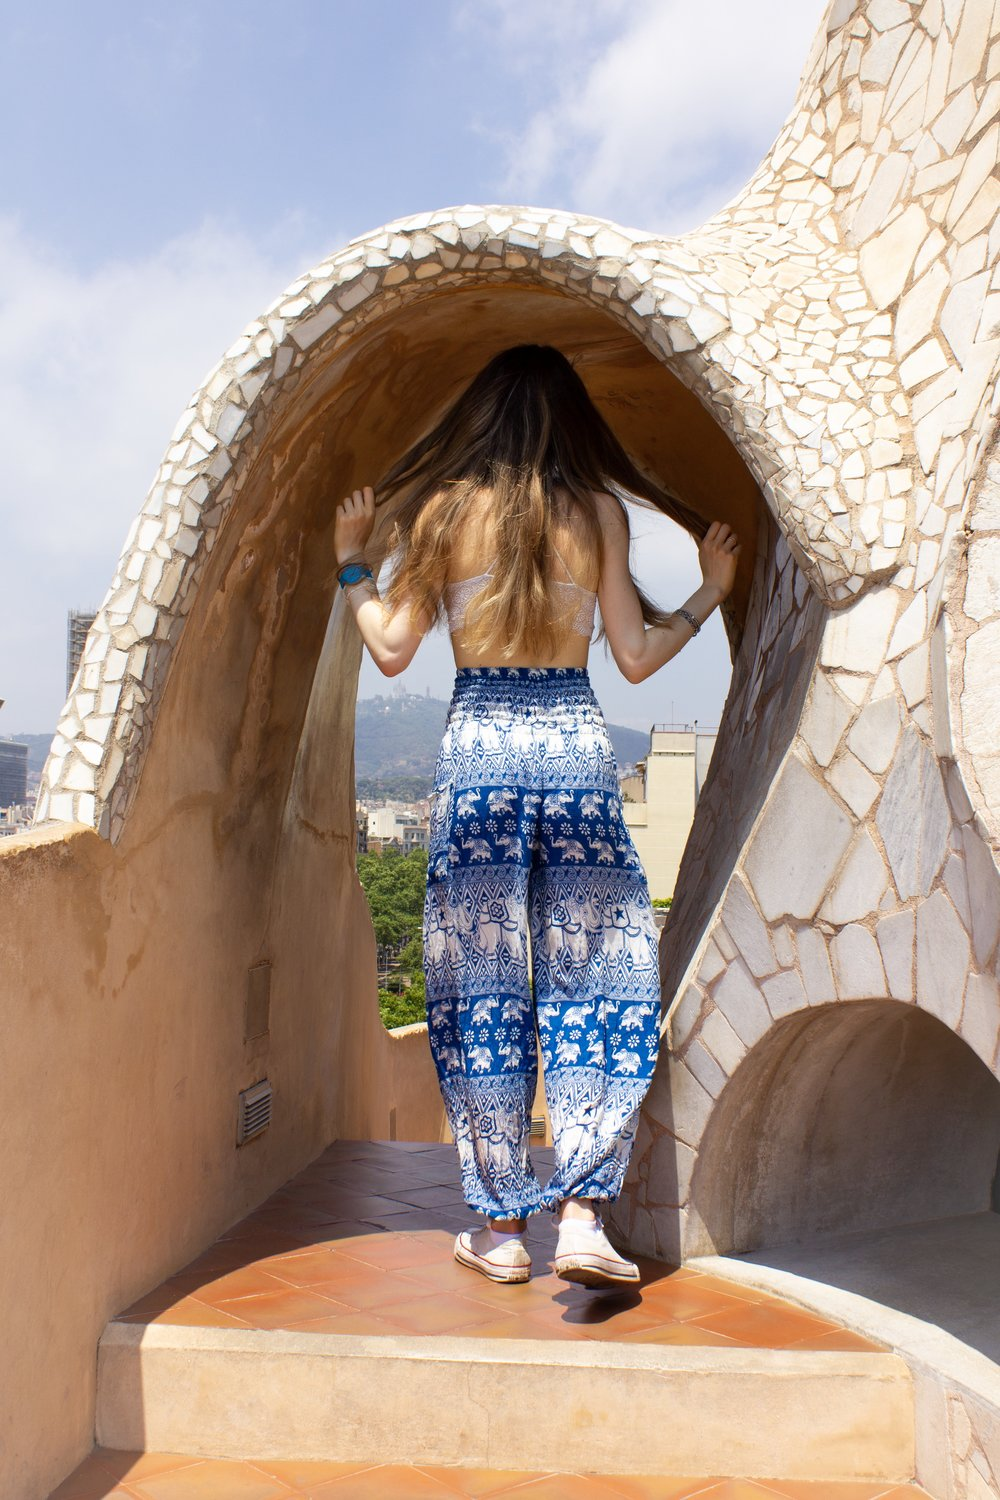 archway on the rooftop of La Pedrera